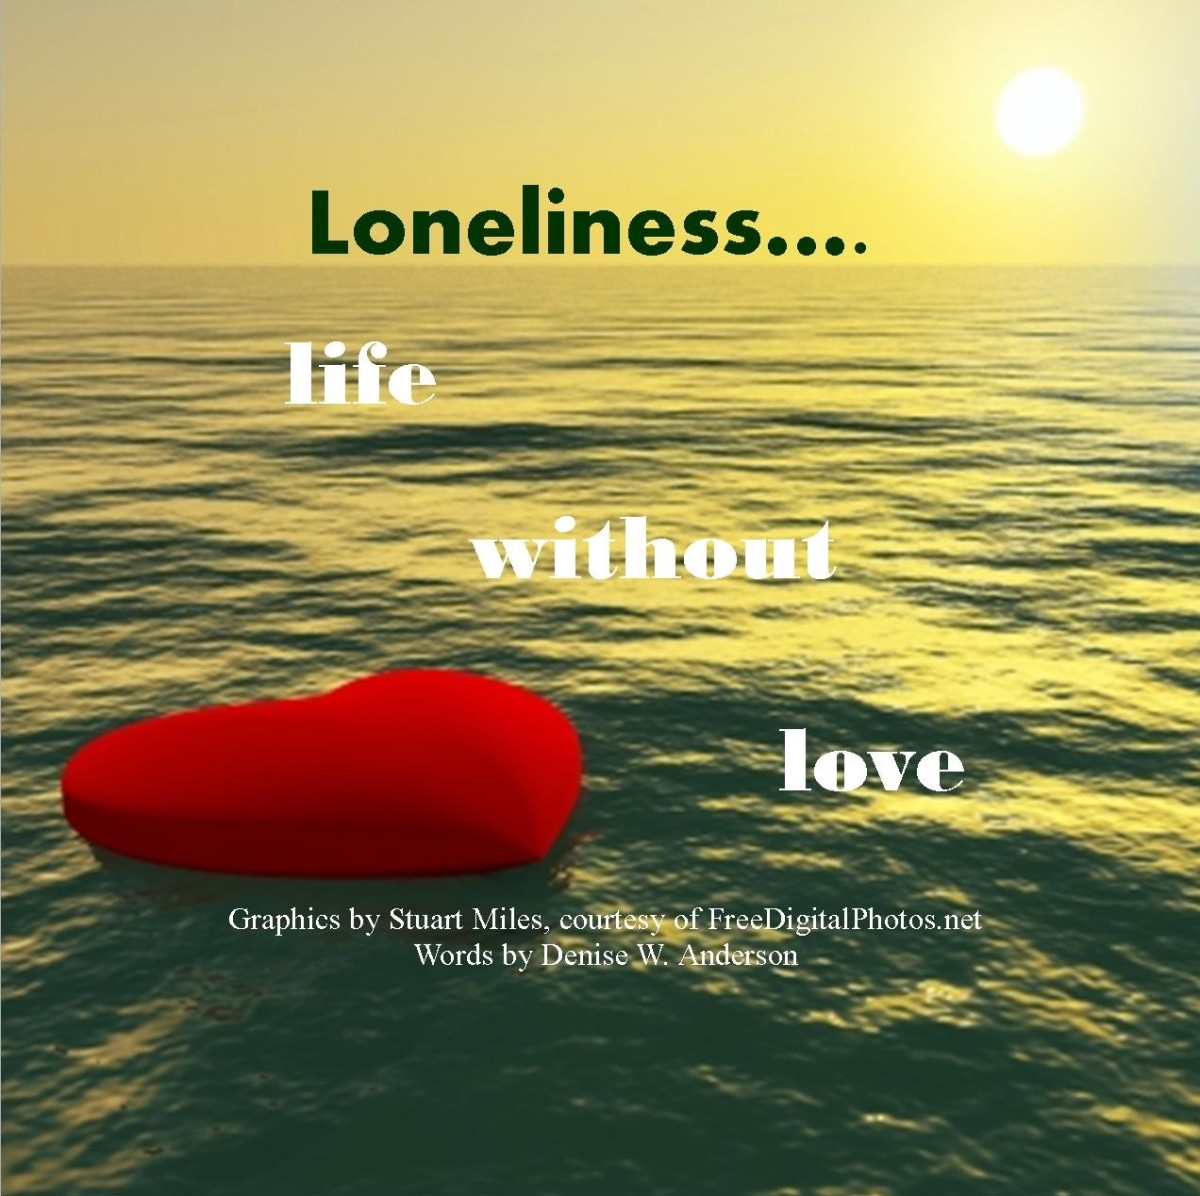 Without love, loneliness becomes are only friend.